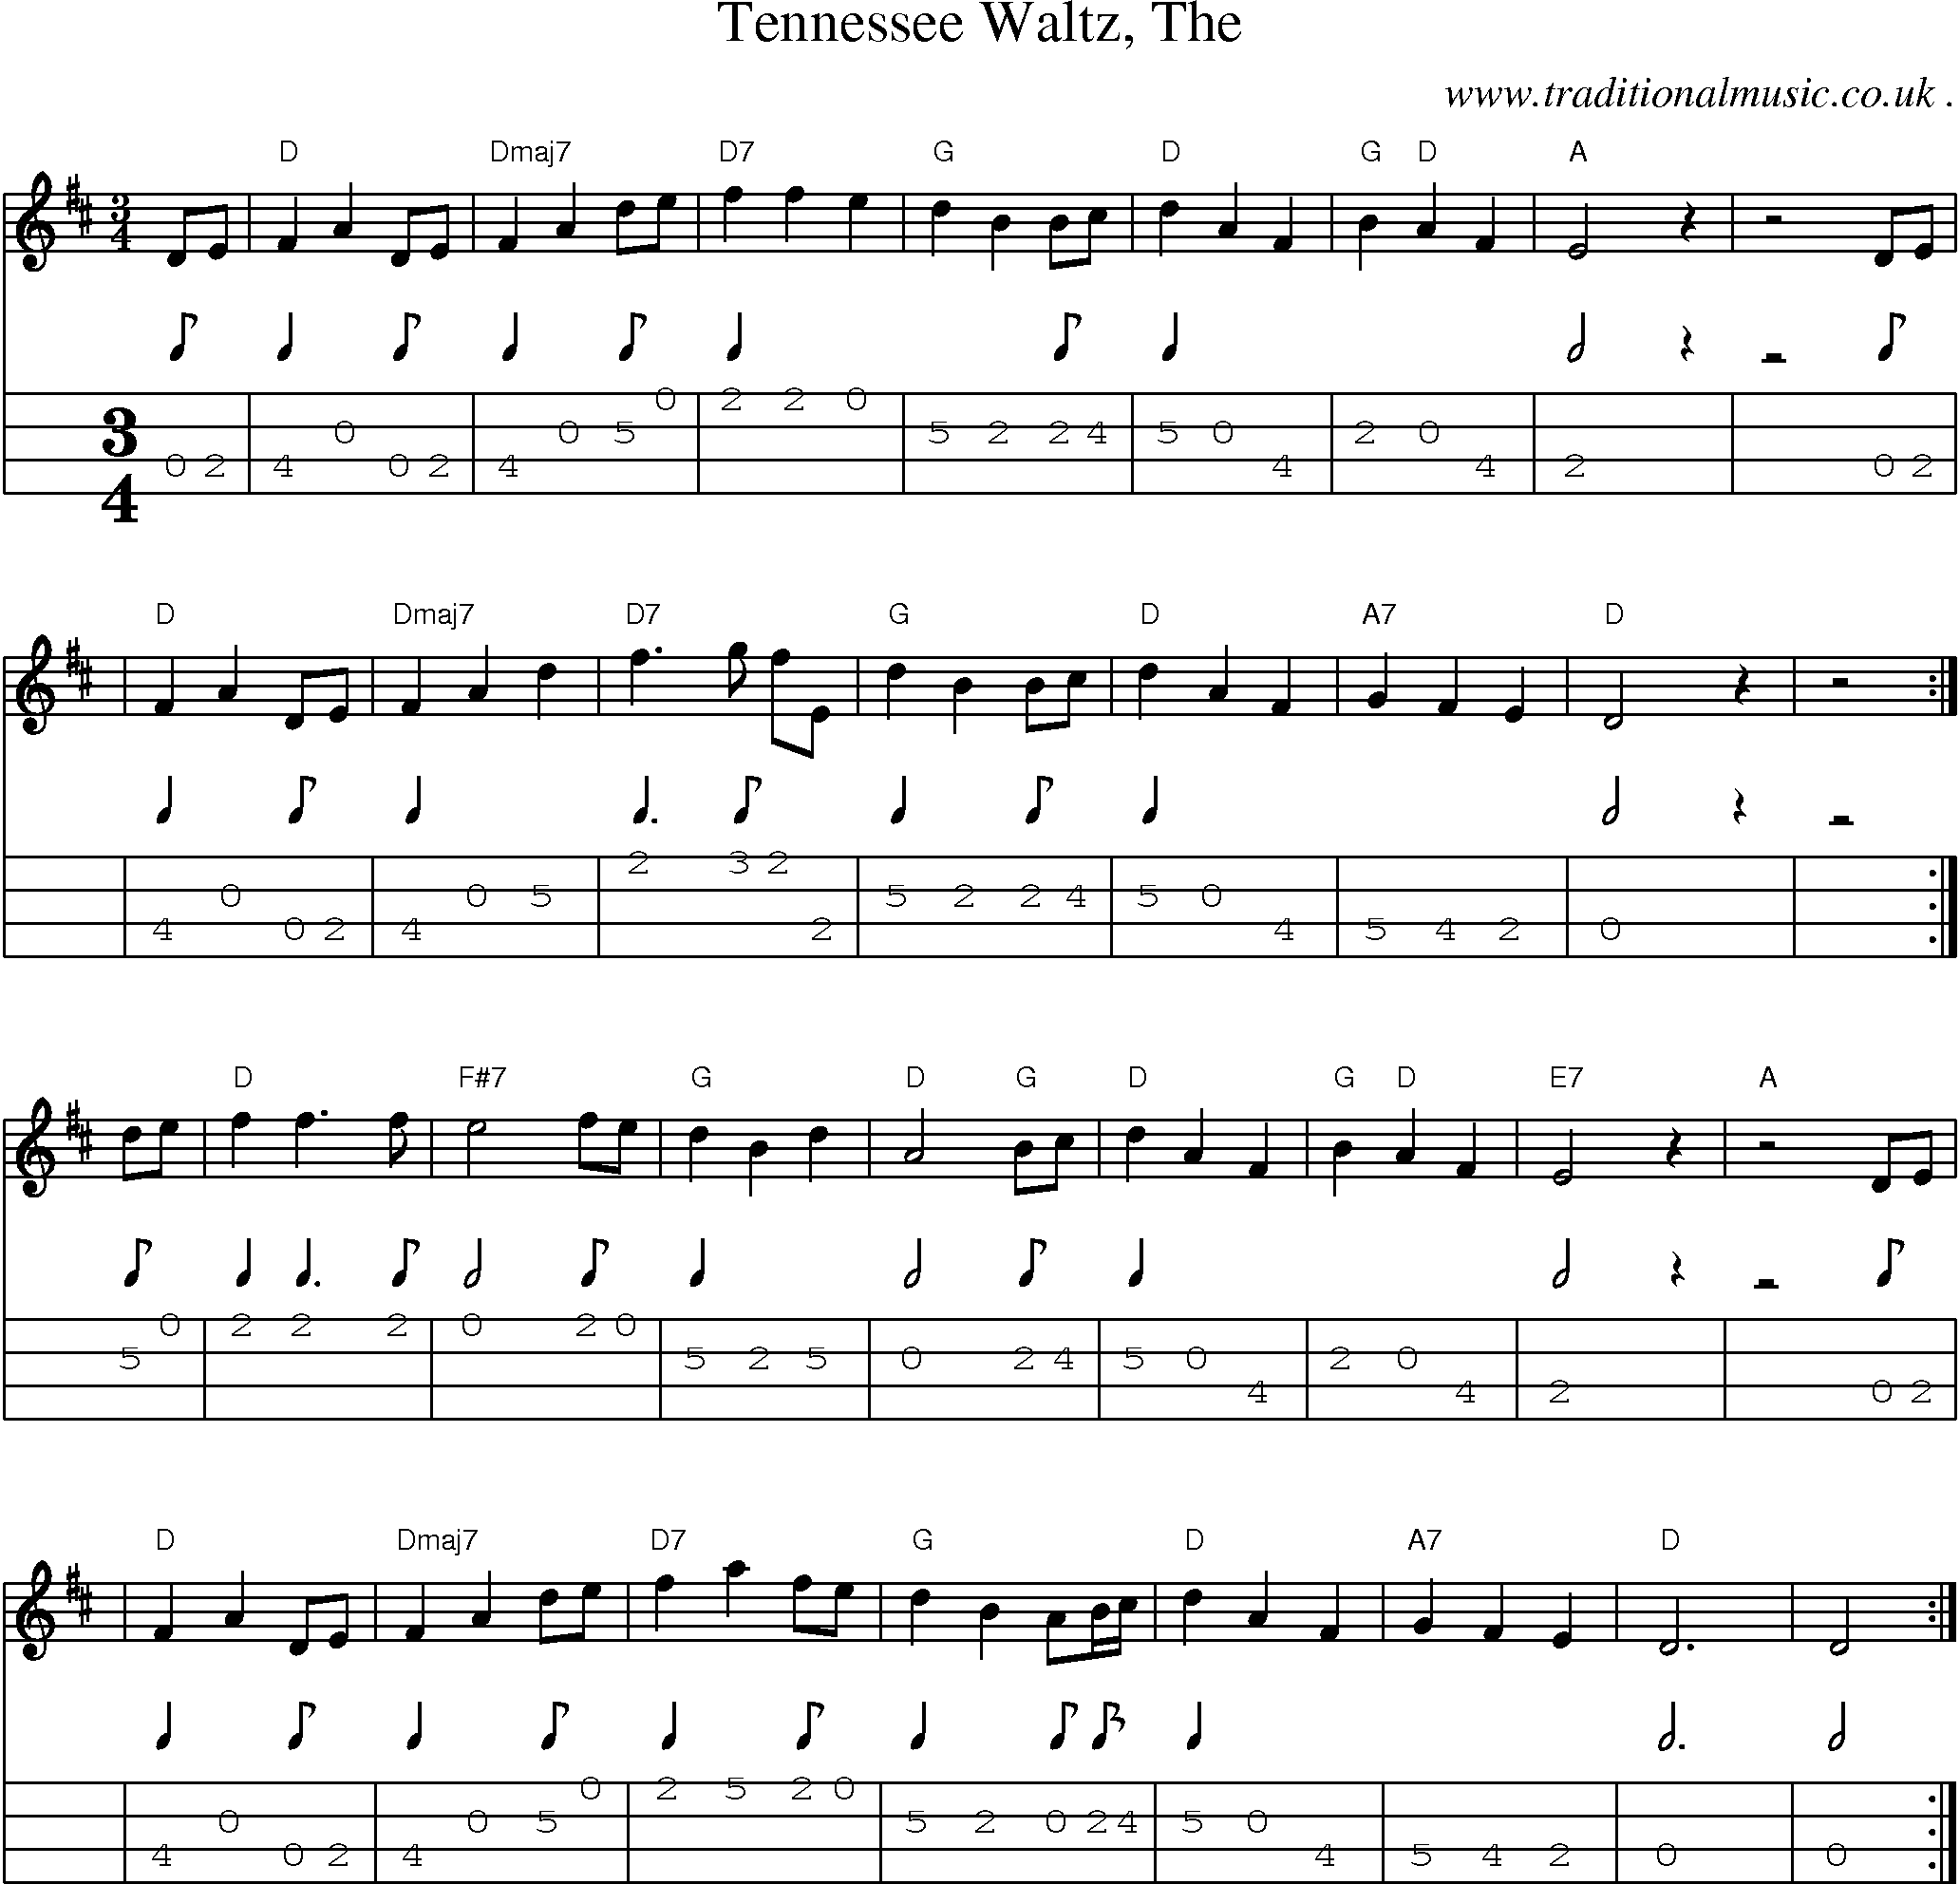 American Old-time music, Scores and Tabs for Mandolin - Tennessee Waltz The